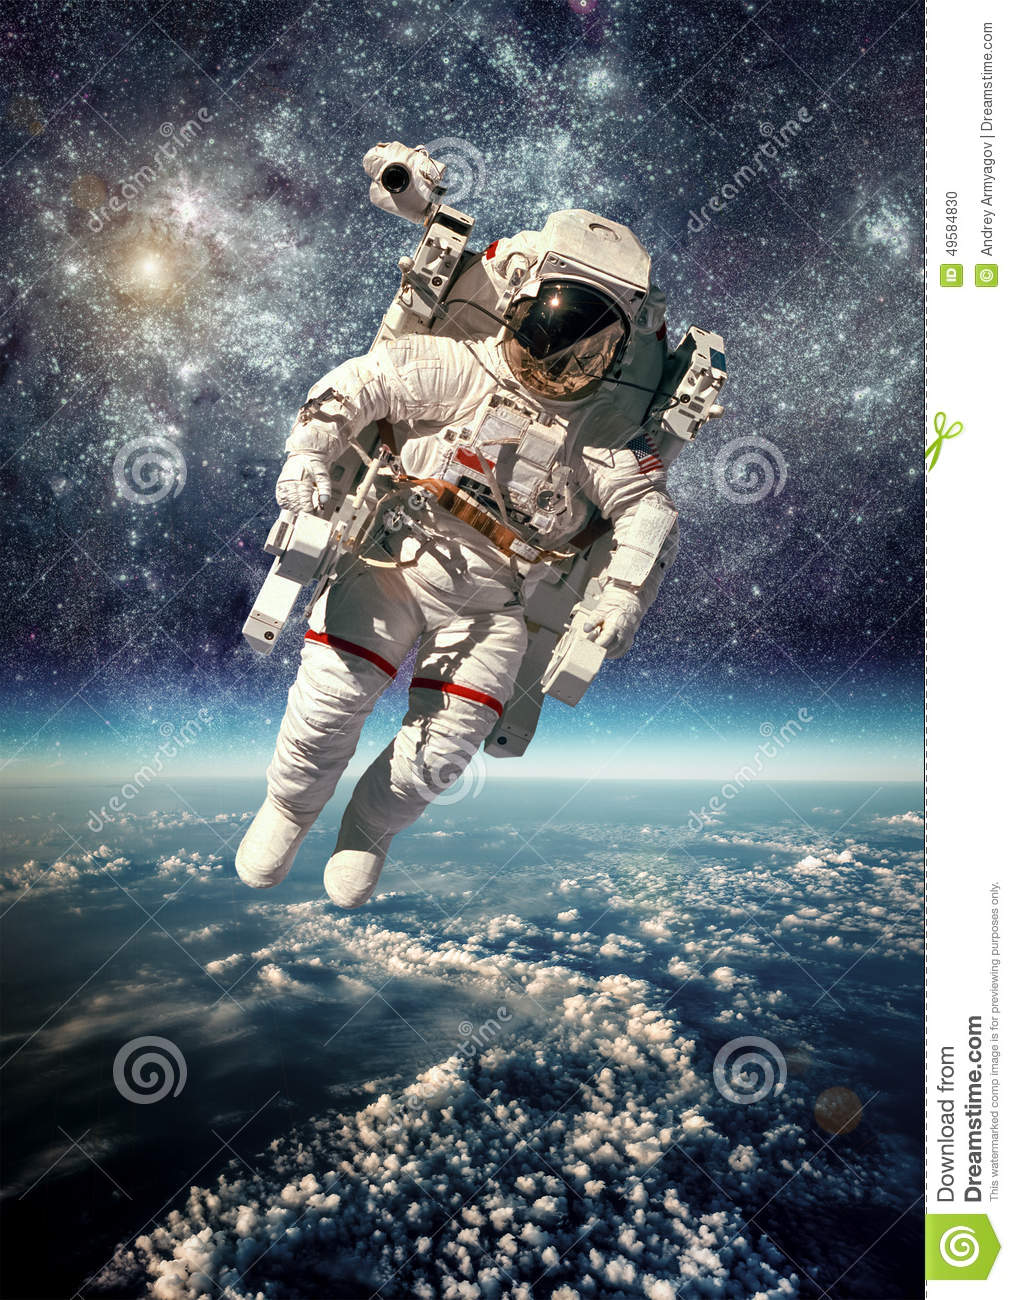 Astronaut In Outer Space Stock Photo - Image: 49584830